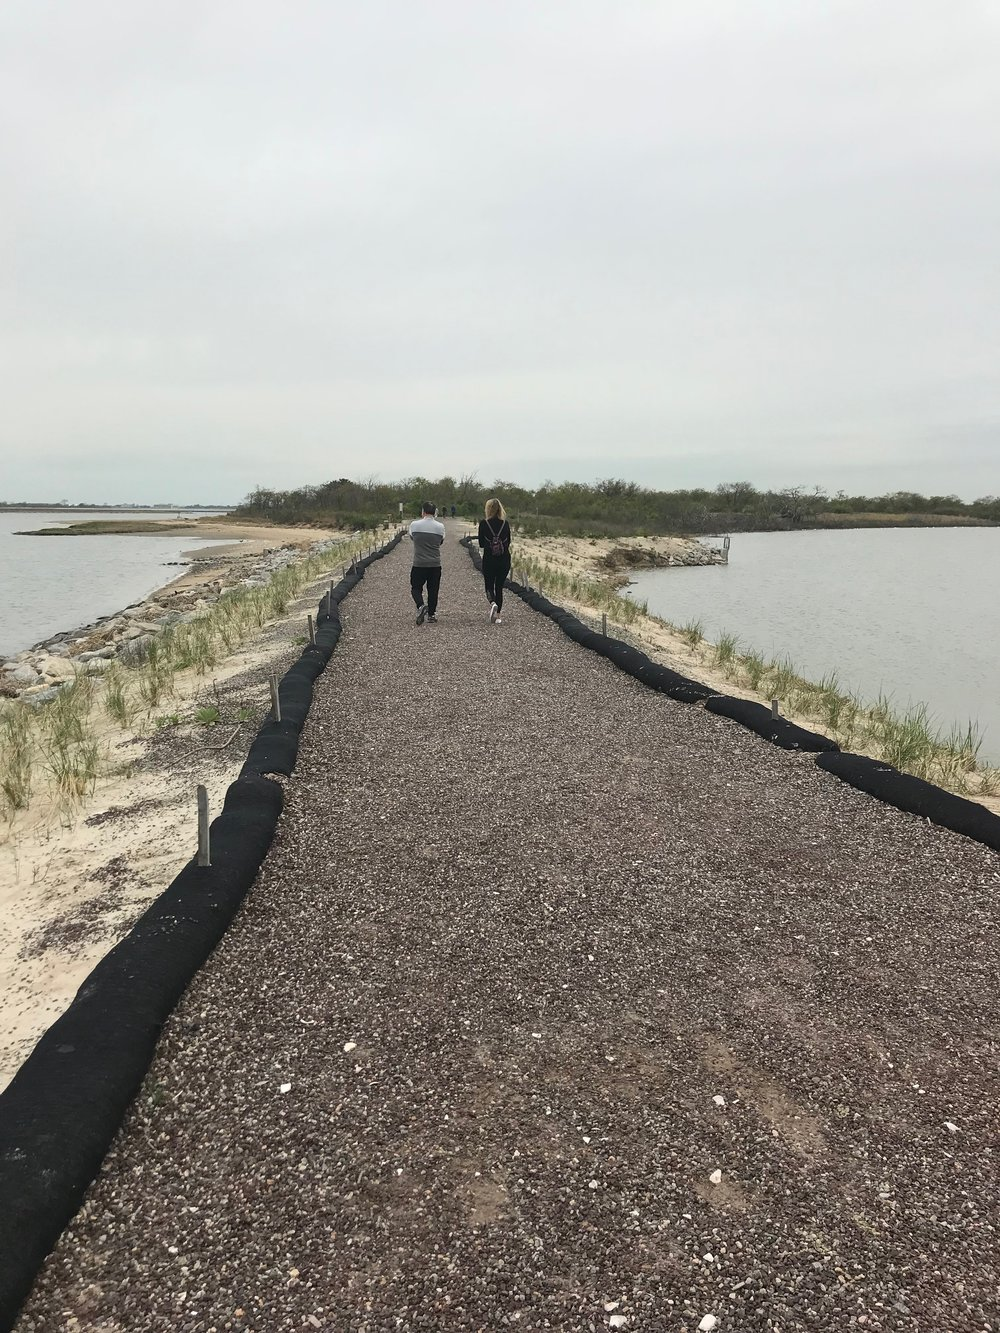 The West Pond Trail at Jamaica Bay Wildlife Refuge in Broad Channel, which houses just some of the boroughs marine wildlife. Eagle file photo by Jonathan Sperling.